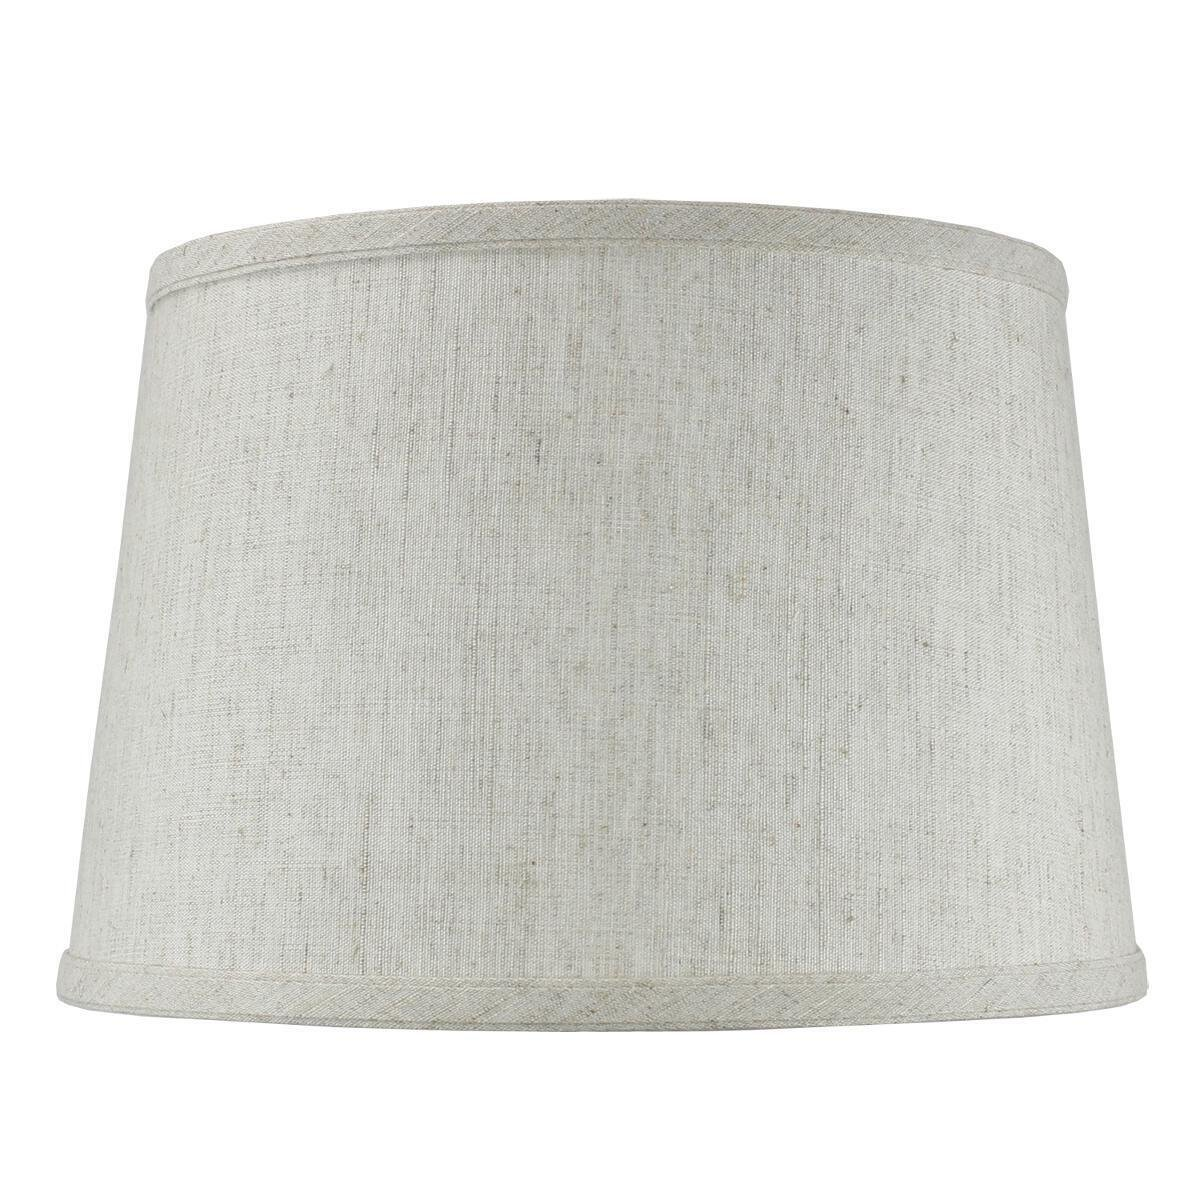 10x12x08 Hardback Shallow Drum Lampshade Textured Oatmeal with Brass Spider fitter By Home Concept - Perfect for table and desk lamps - Medium, Off-white